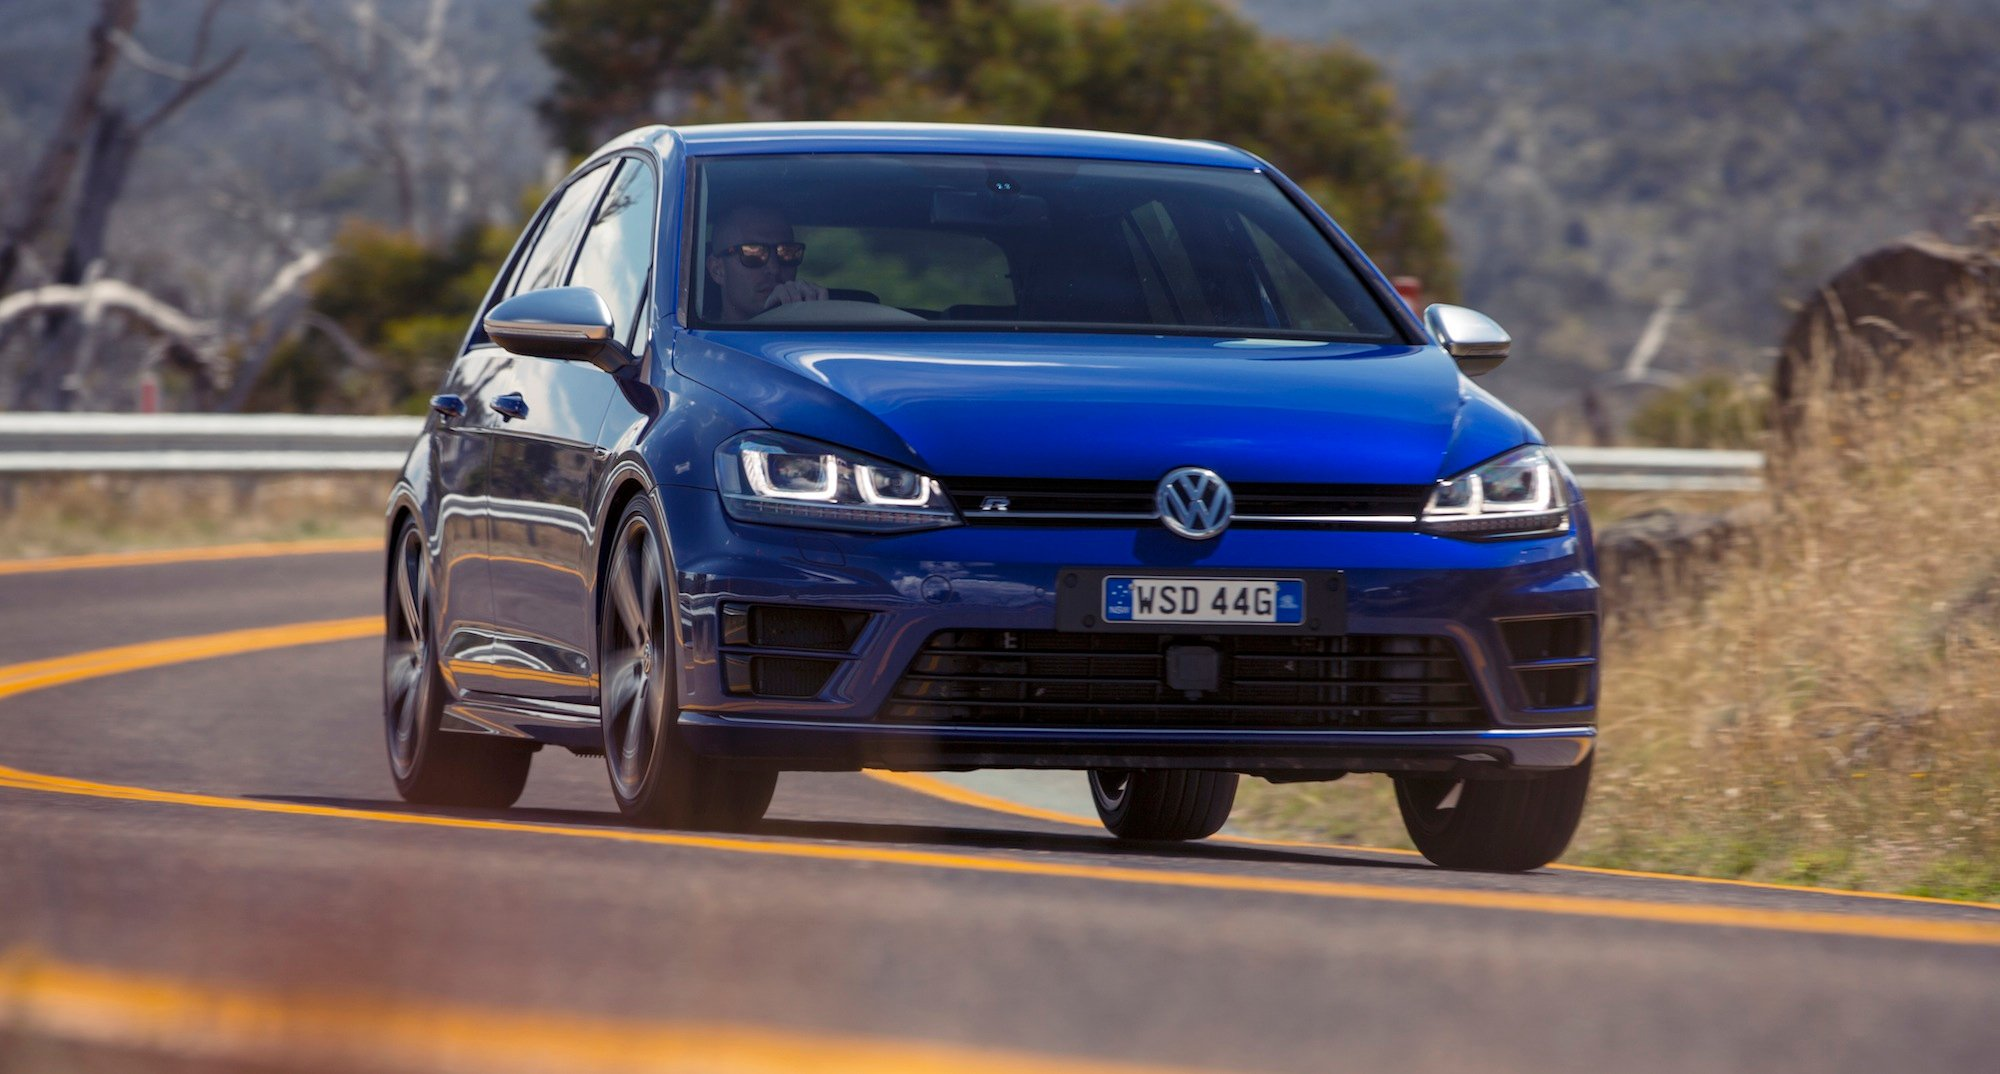 Price Of Mazda 5 >> 2014 Volkswagen Golf R Review - photos | CarAdvice